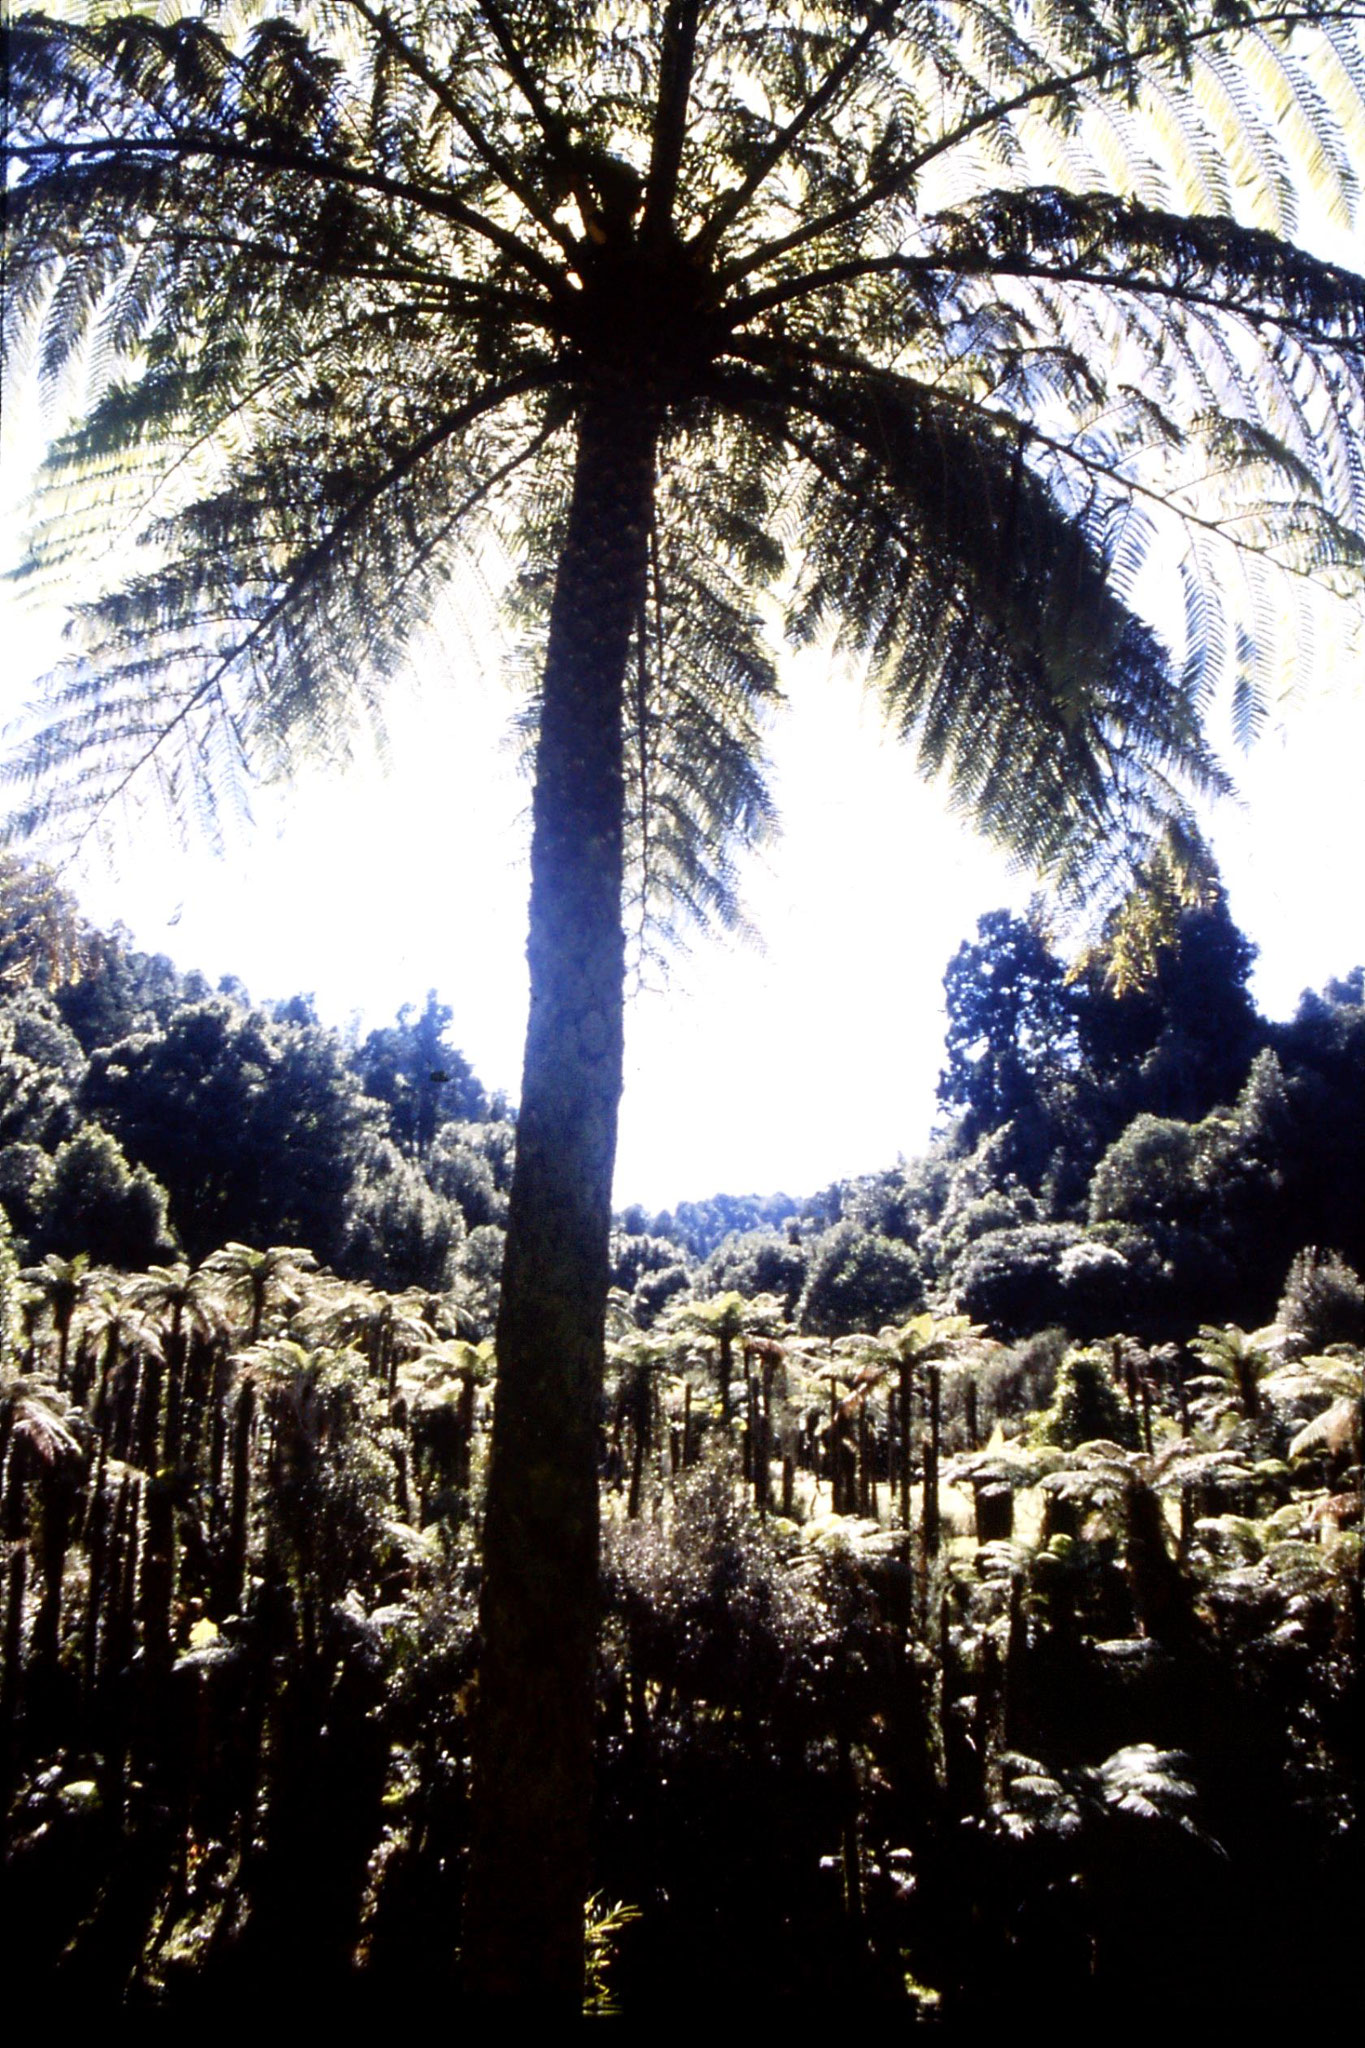 29/8/1990: 35: Tangarakau, tree ferns